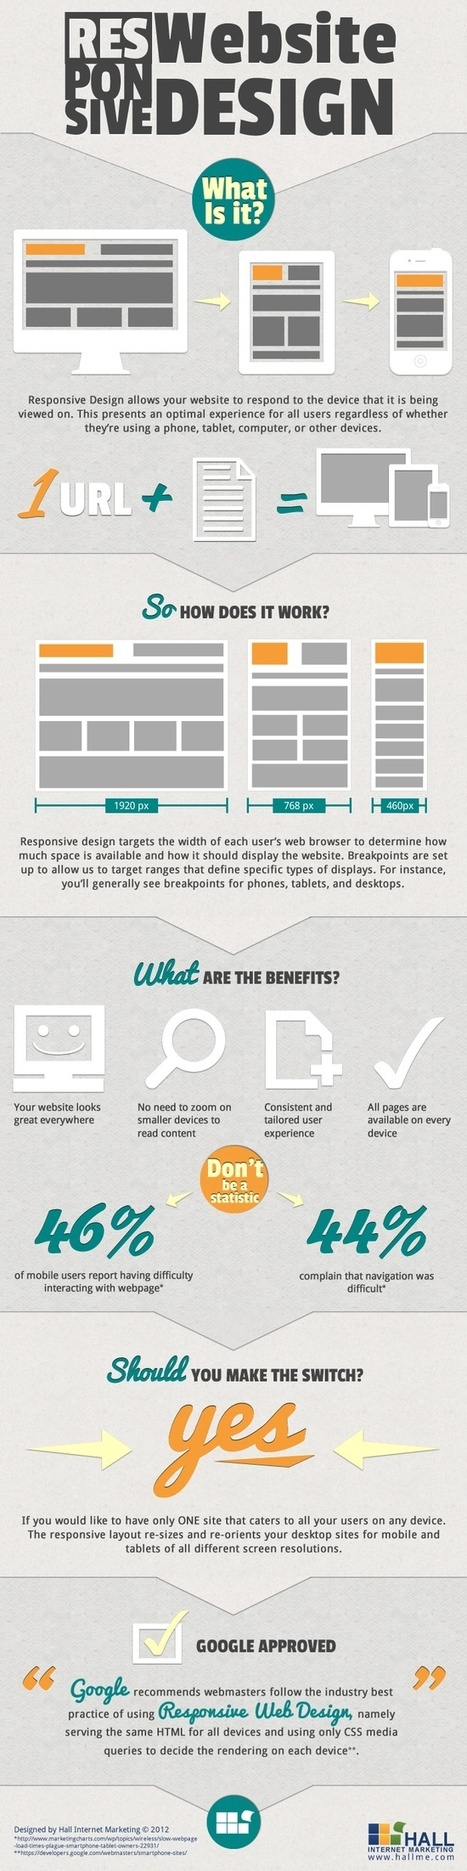 Responsive Website Design, What Is It? [Infographic] | New to Social Media | Scoop.it